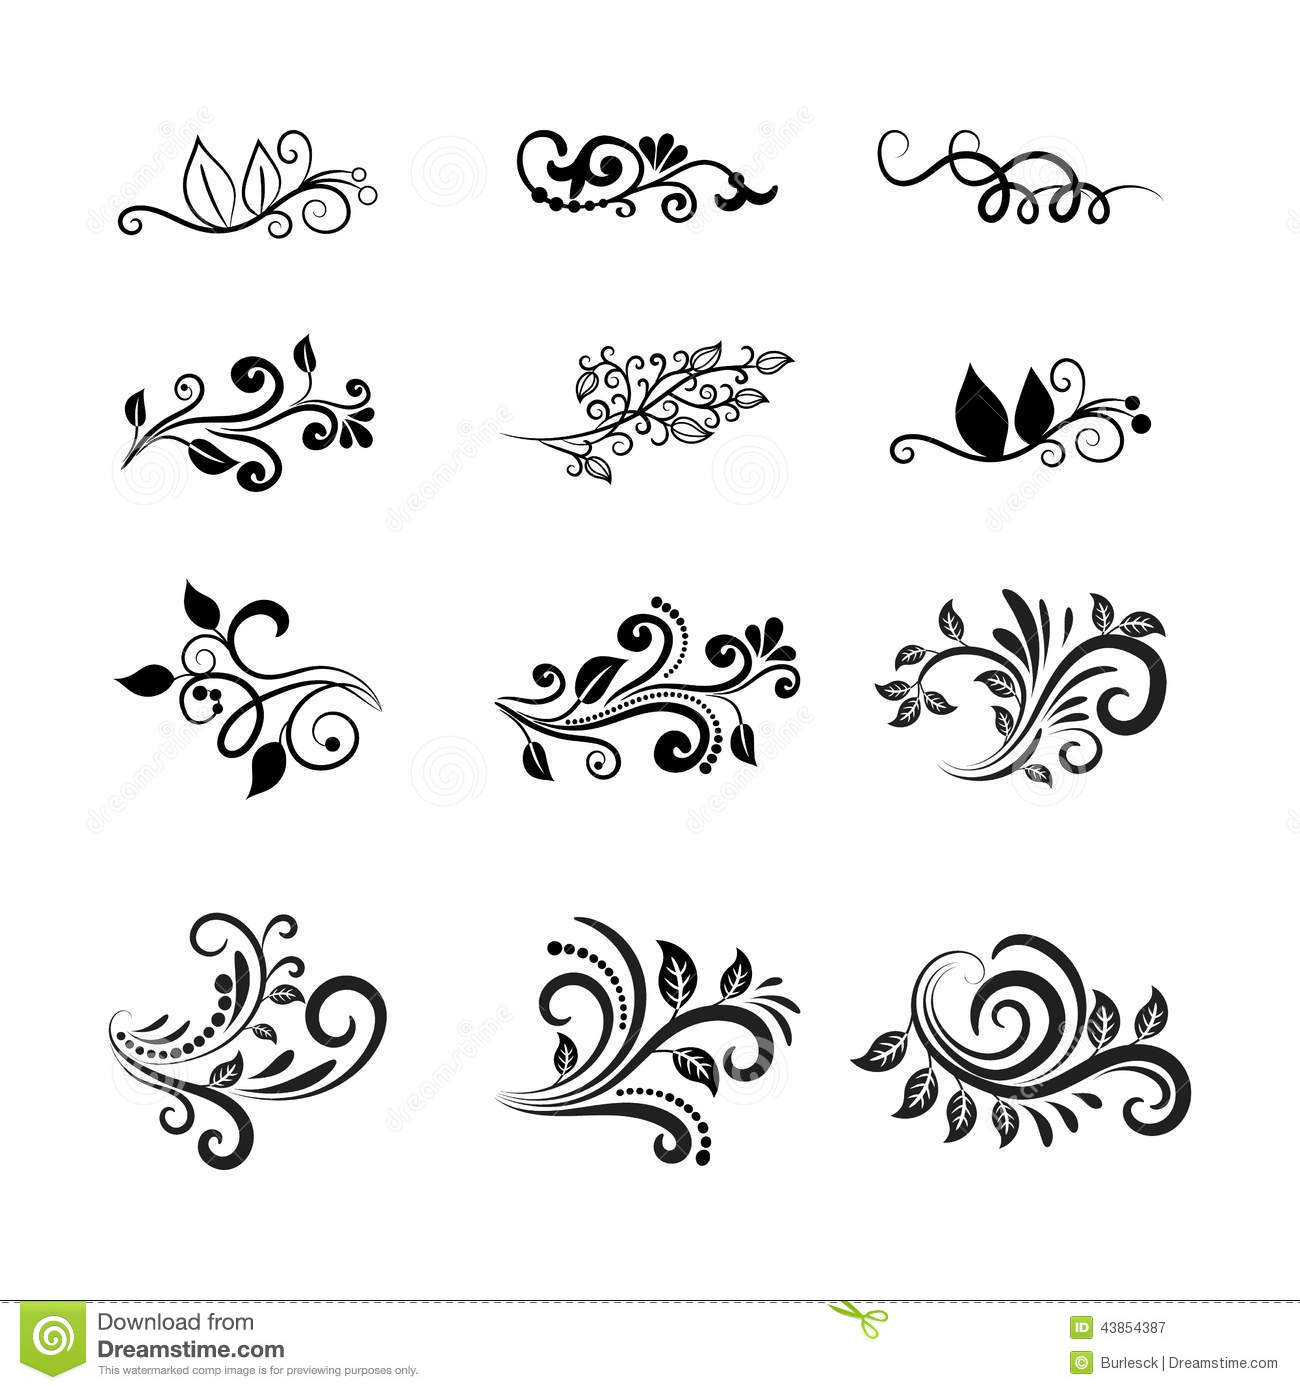 Elements For Design : Vector calligraphic floral design elements stock